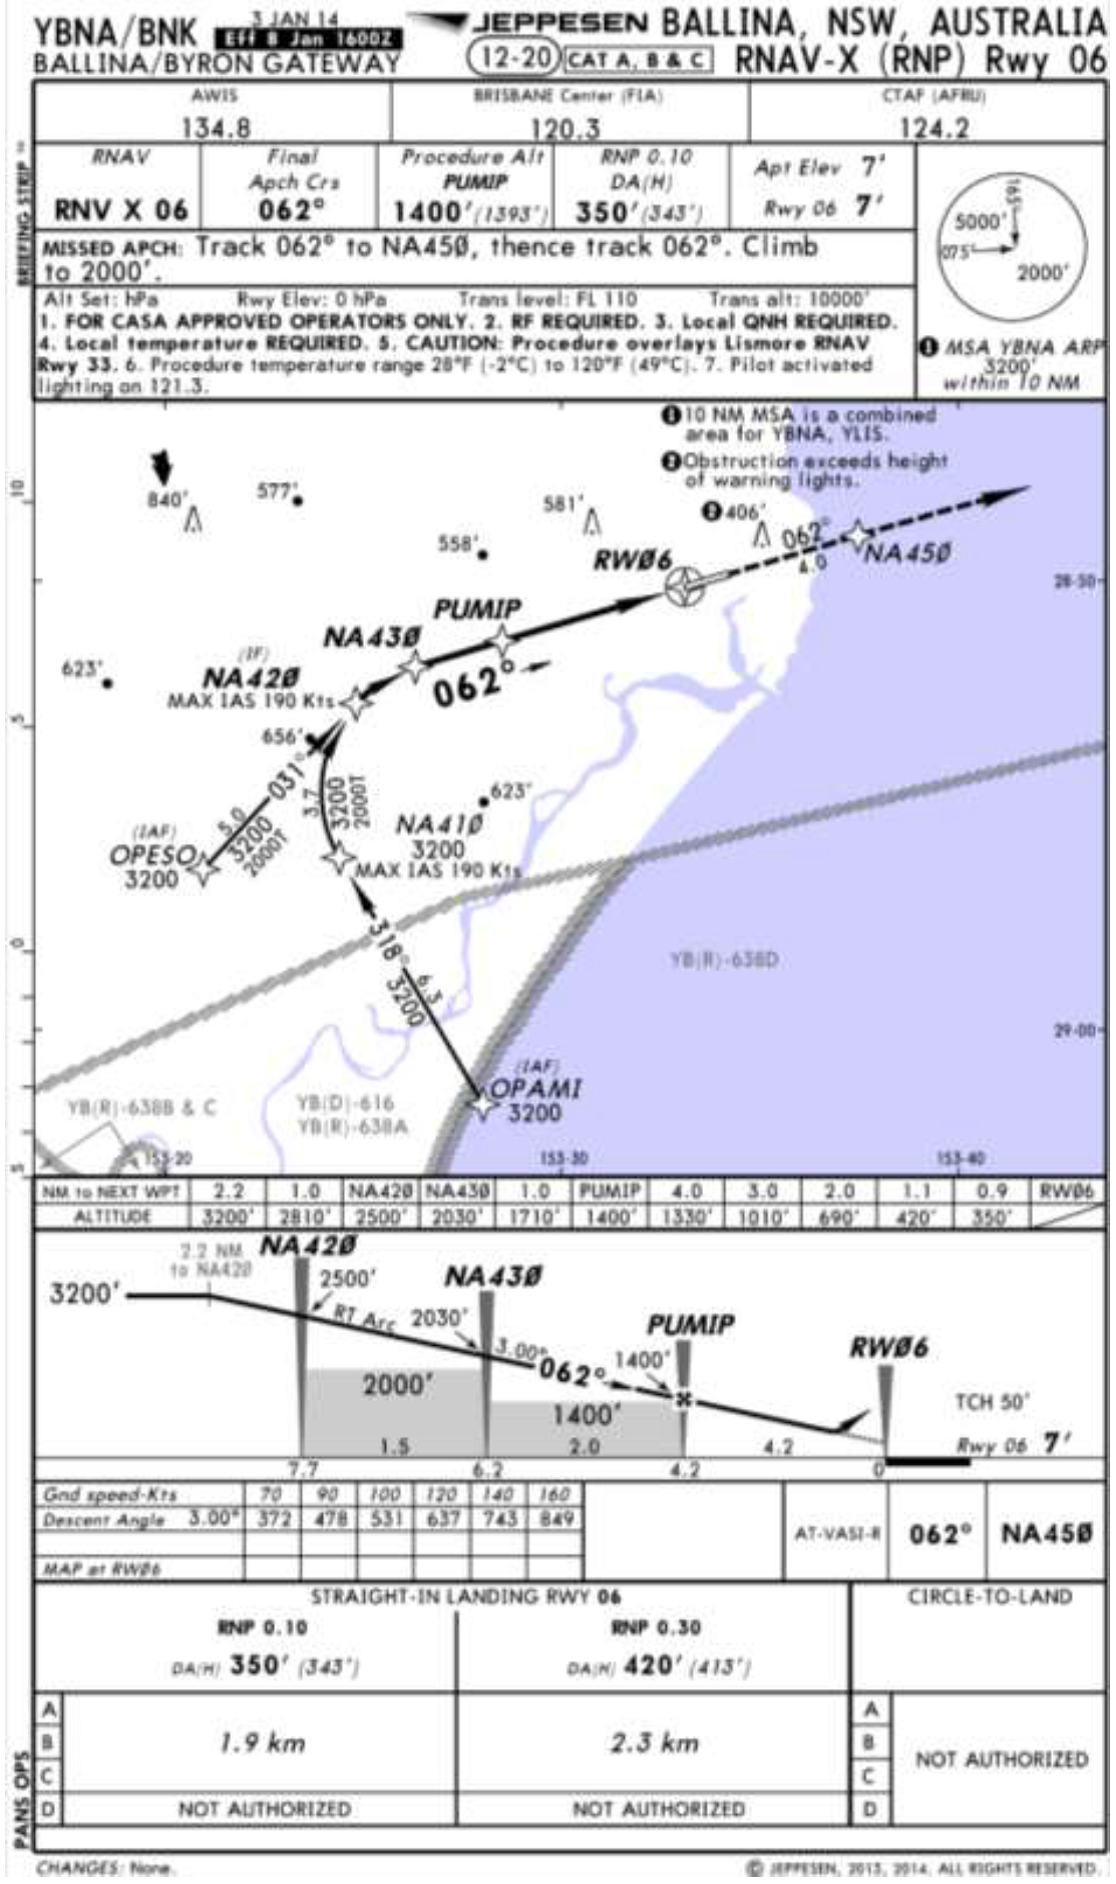 Jeppeson - Not for Operational Use - Ballina NSW - RNAV-Z (GNSS) approach runway 06